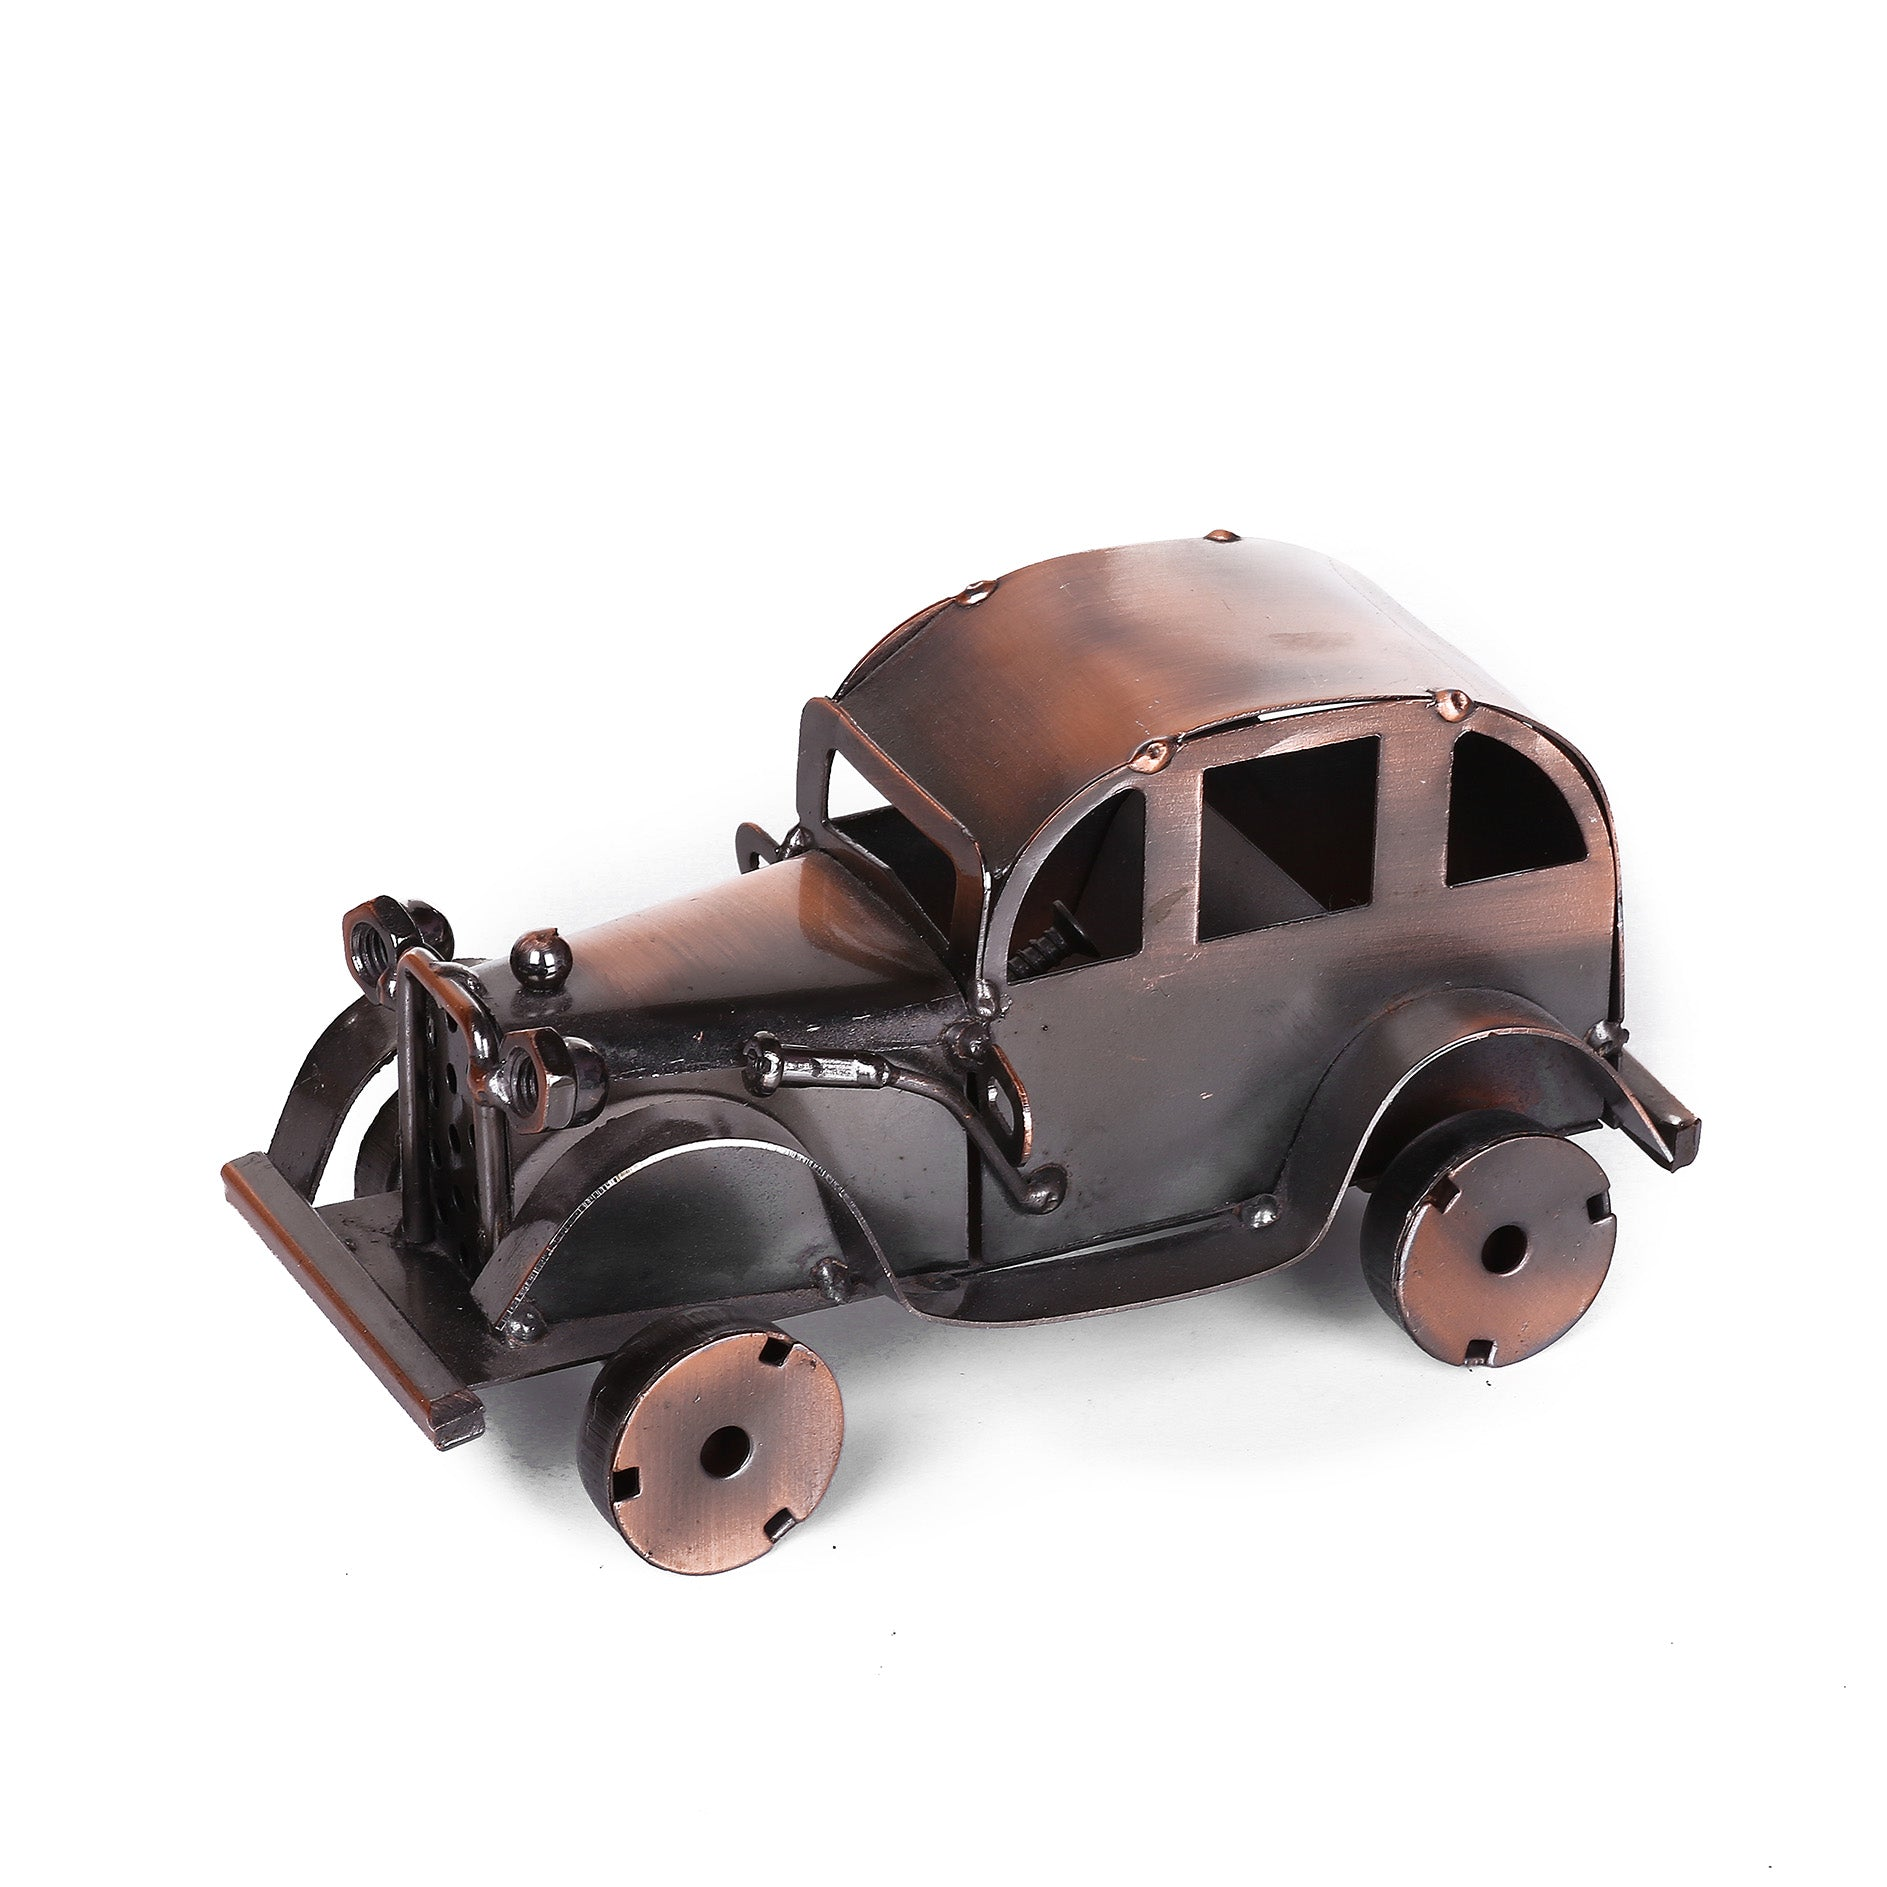 Antique Cooper Metal Design Royal Cars